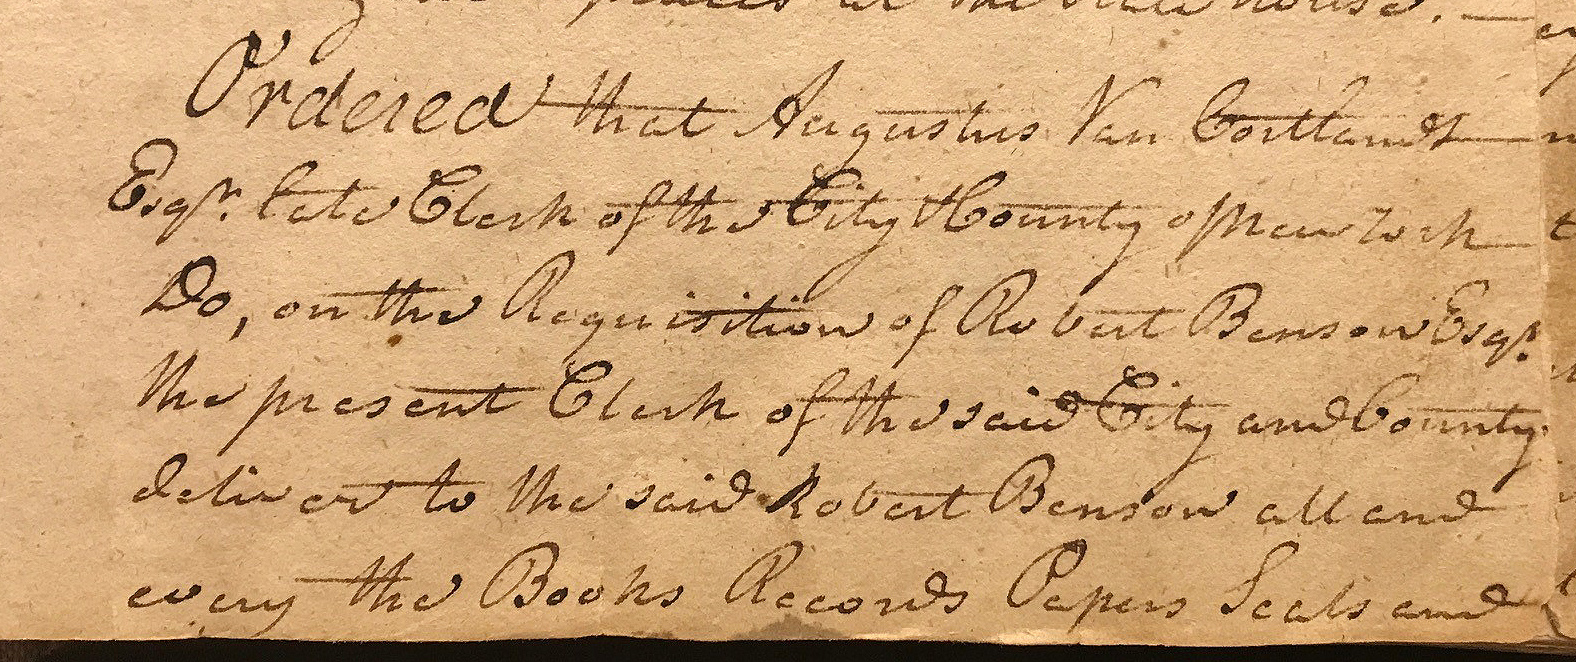 On February 17, 1784, upon the request of the Clerk Robert Benson, the pre-war Clerk Augustus Van Cortlandt, was ordered to turn over all books, records, papers, and seals. Common Council Records, NYC Municipal Archives.